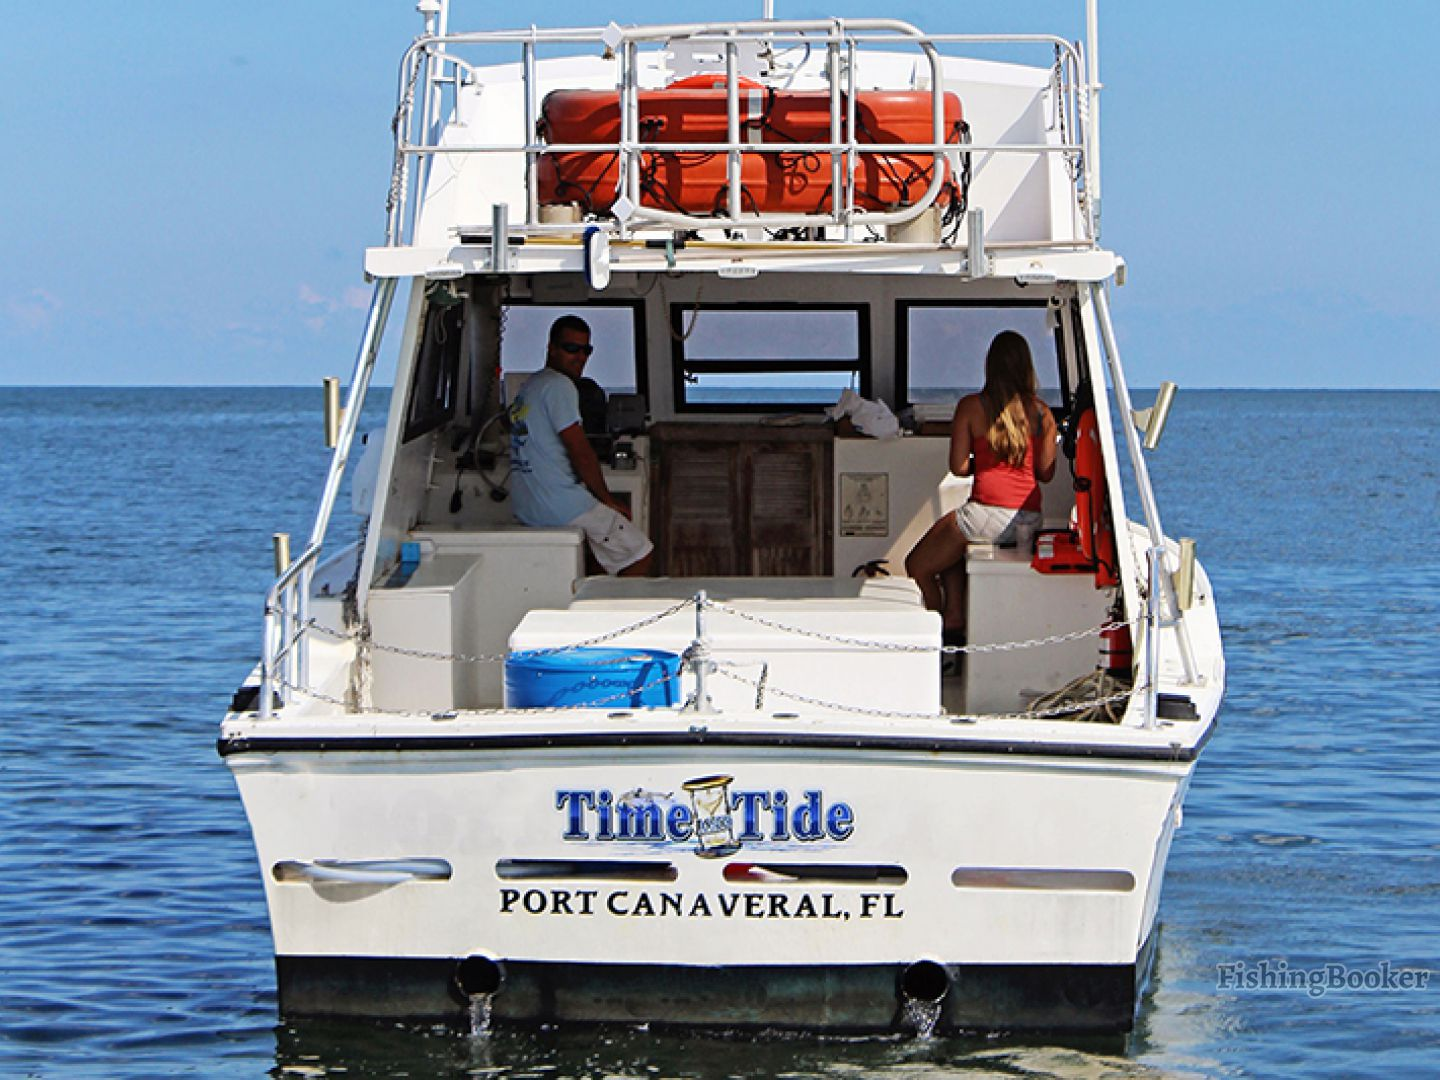 Time and tide tours port canaveral florida for Port canaveral fishing